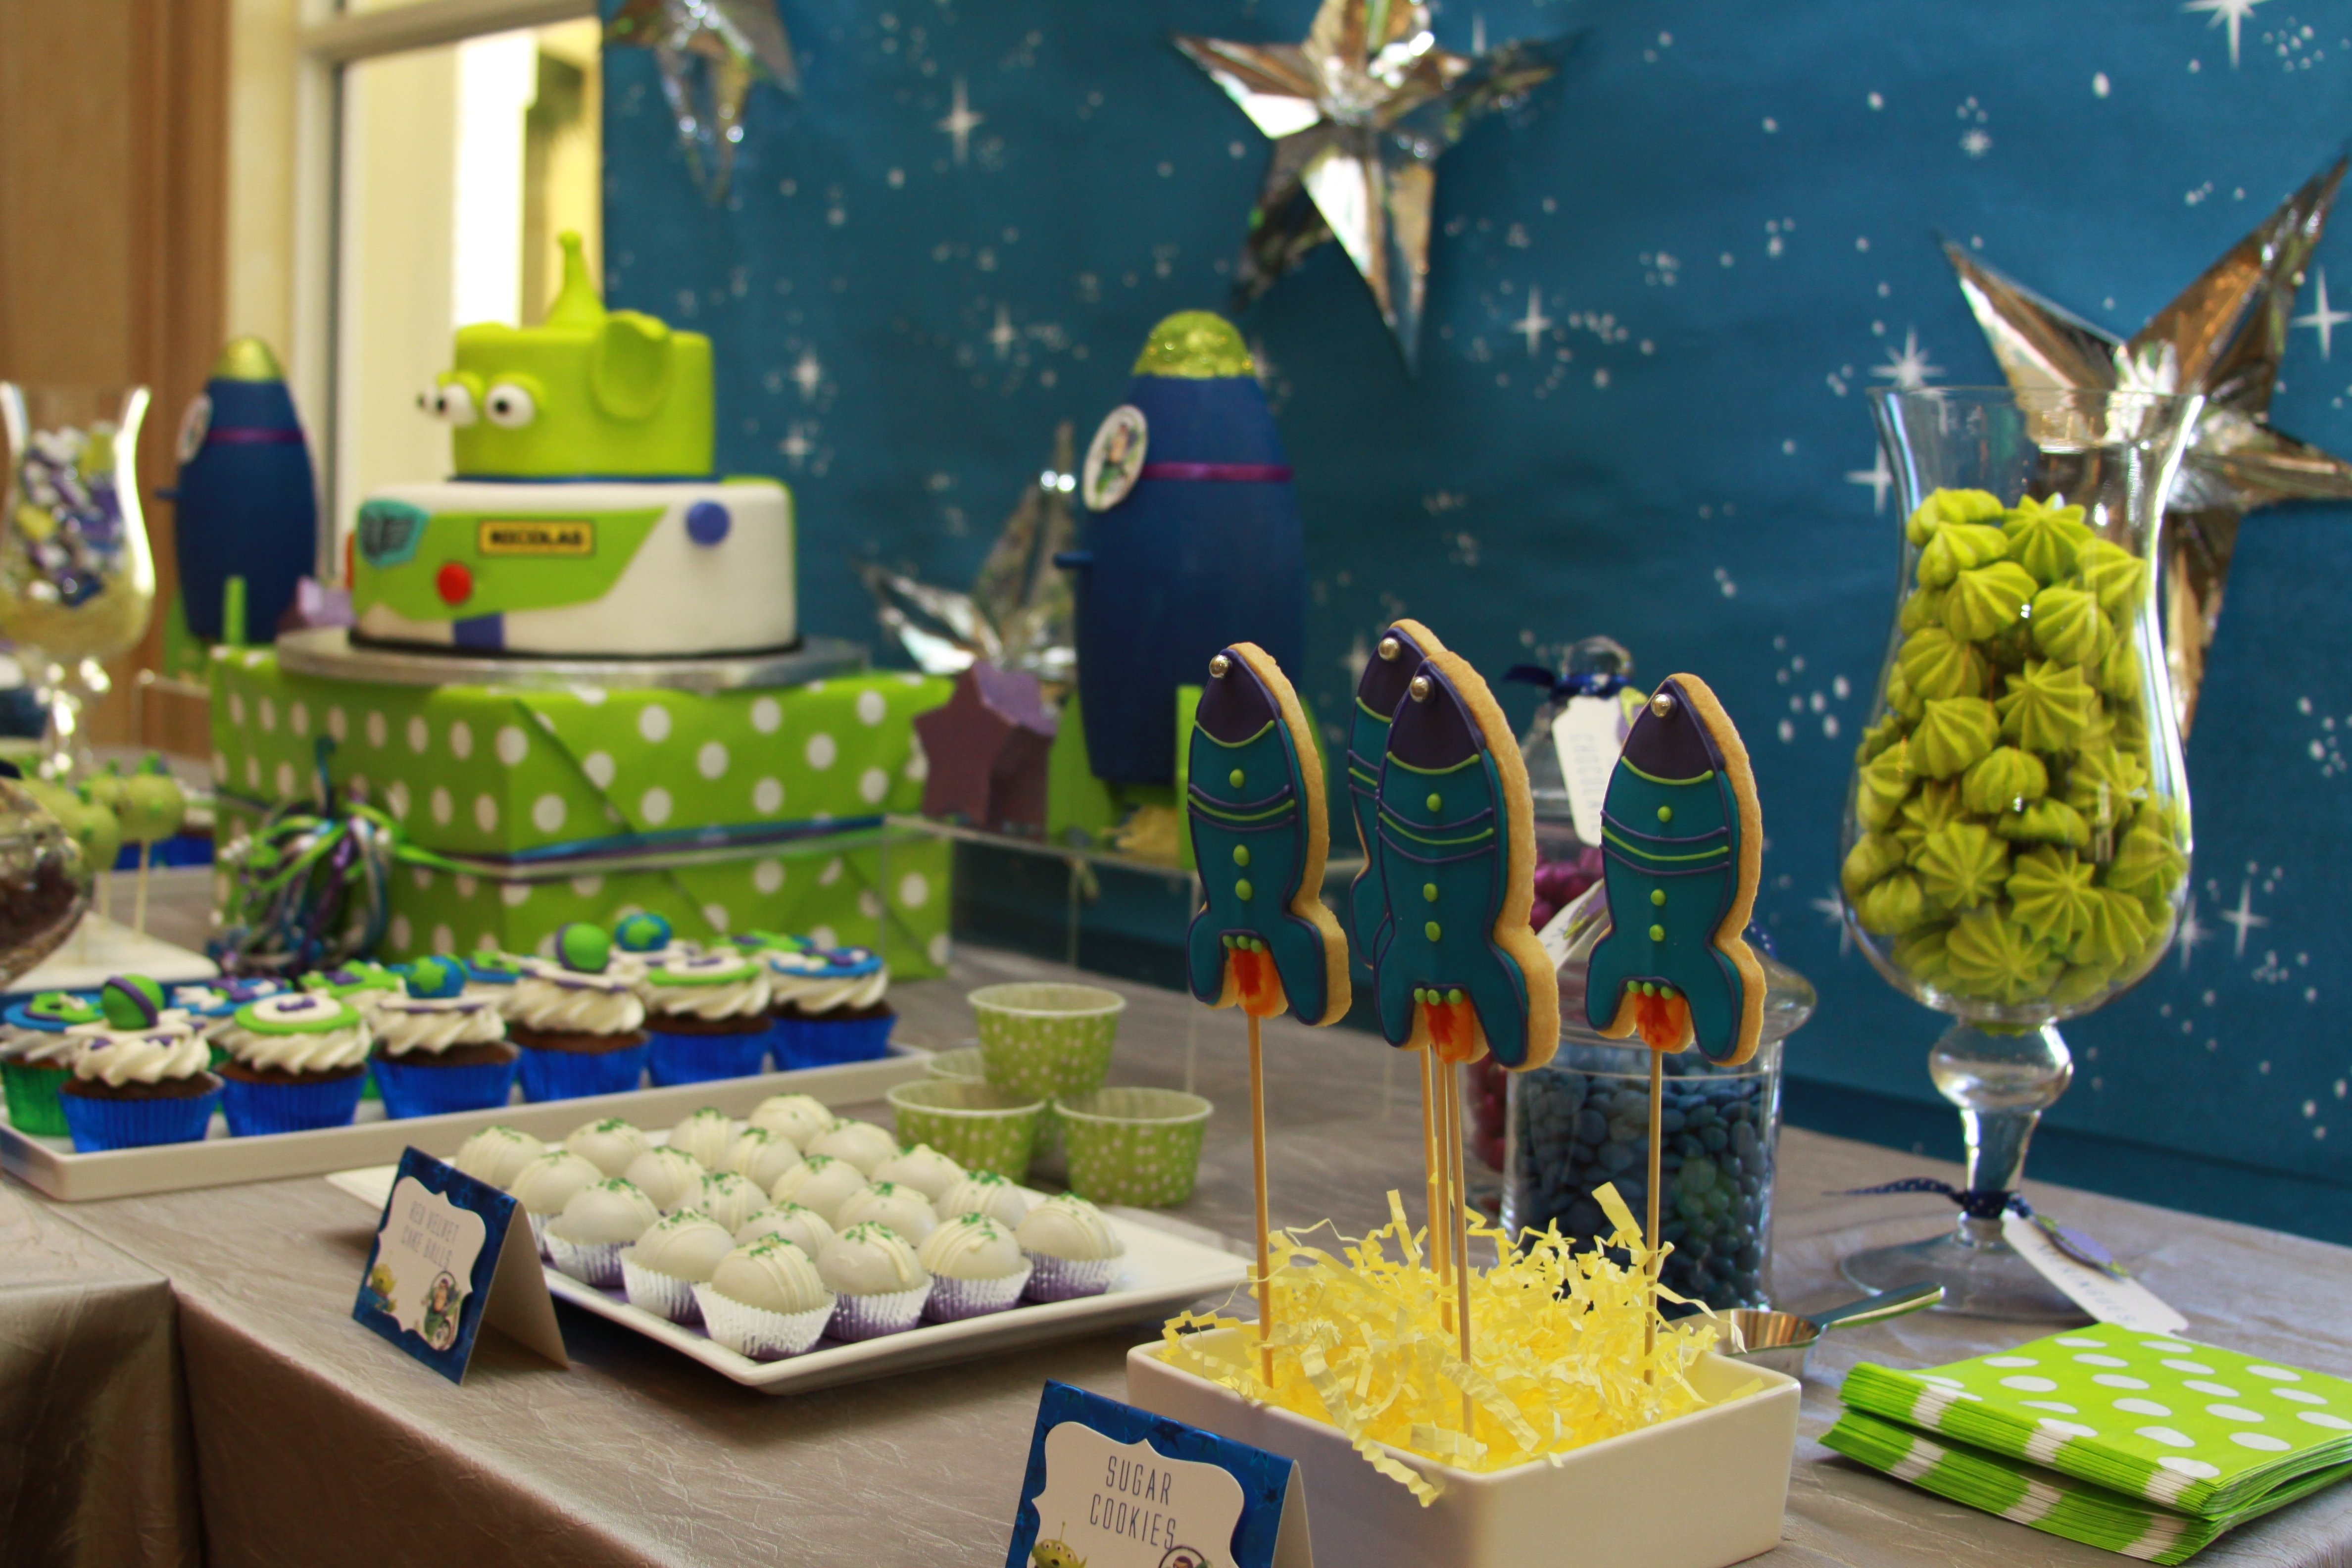 10 Most Recommended Buzz Lightyear Birthday Party Ideas buzz lightyear party party city hours